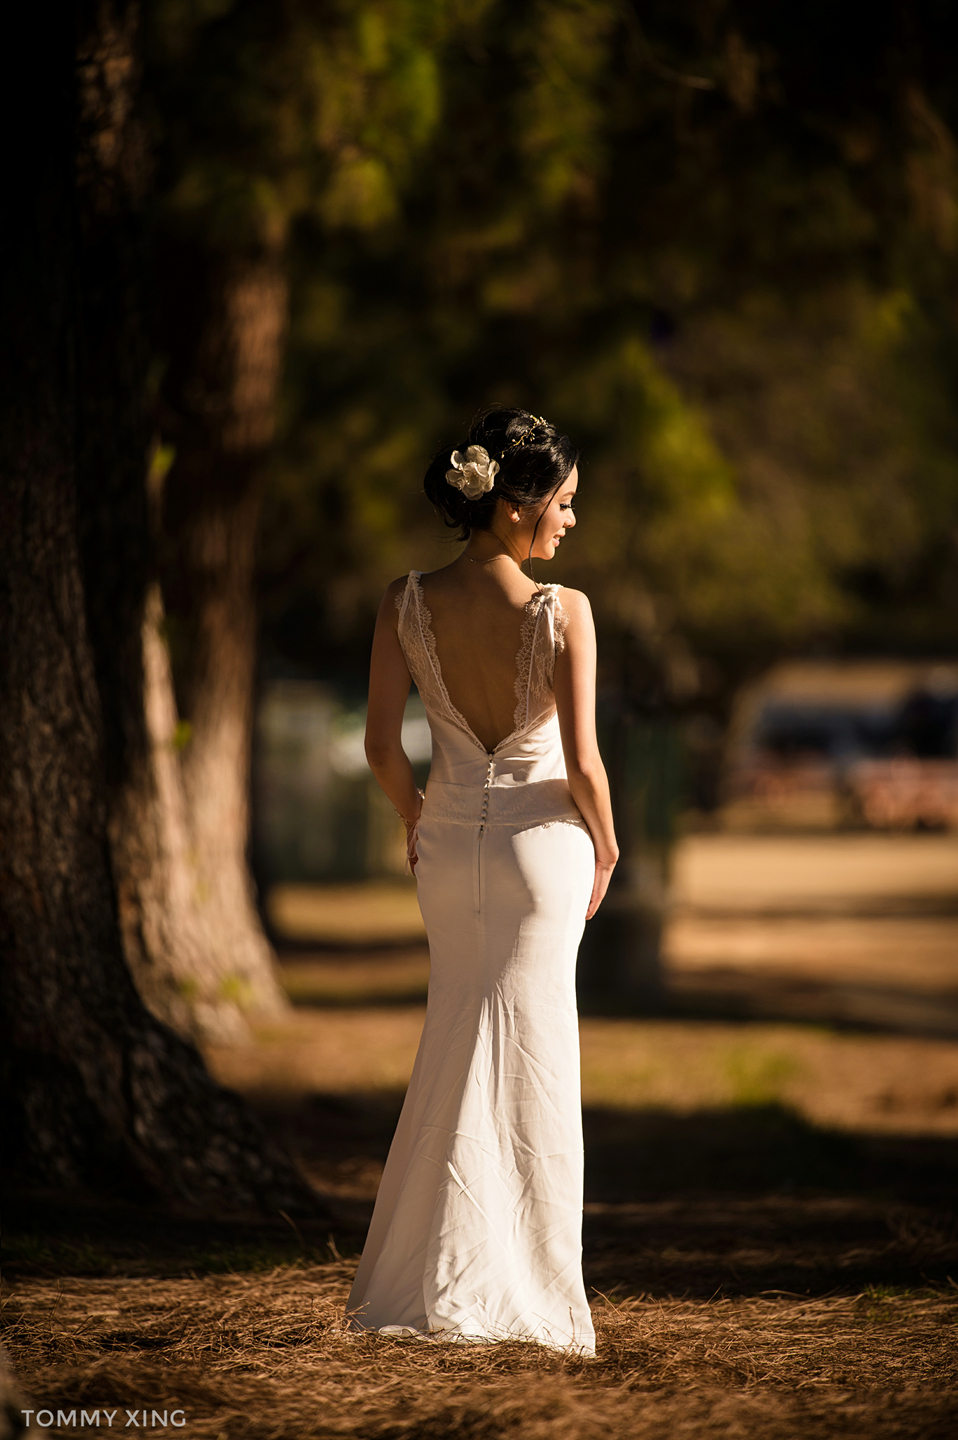 Los Angeles per-wedding 洛杉矶婚纱照 by Tommy Xing Photography 12.jpg